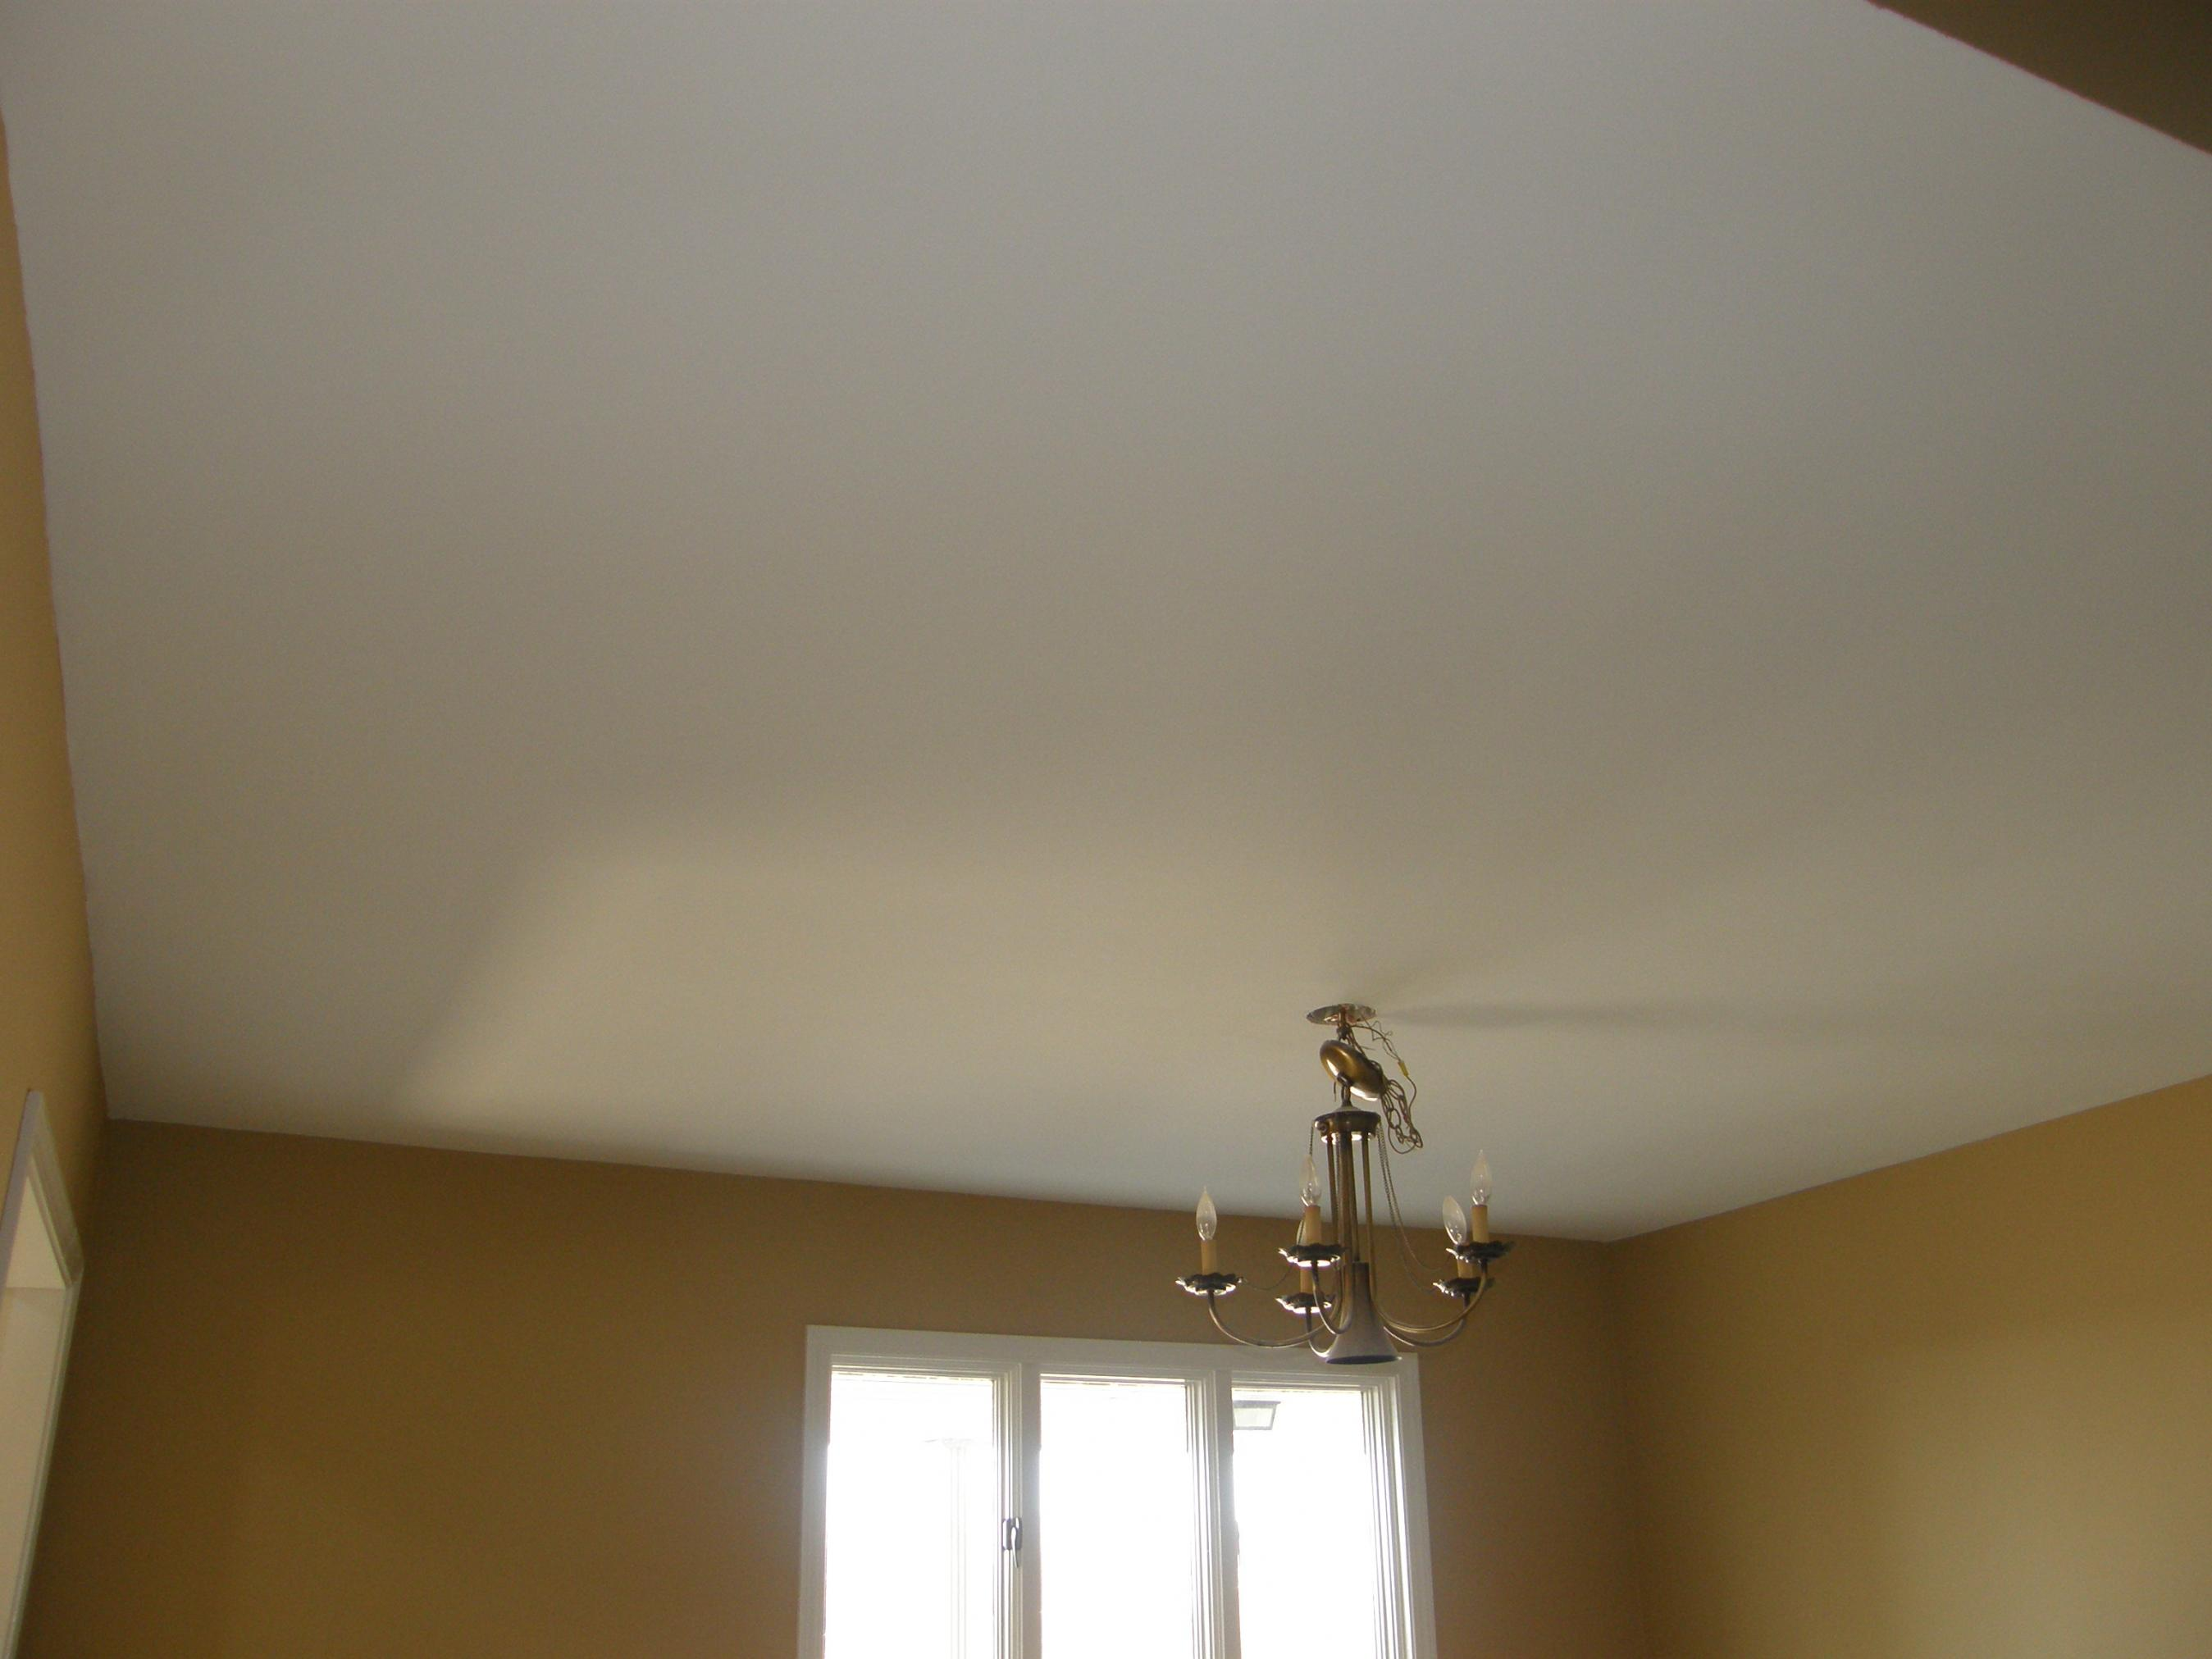 Awesome Popcorn Ceiling Removal Laminate With Pjpg Cost To Remove Asbestos